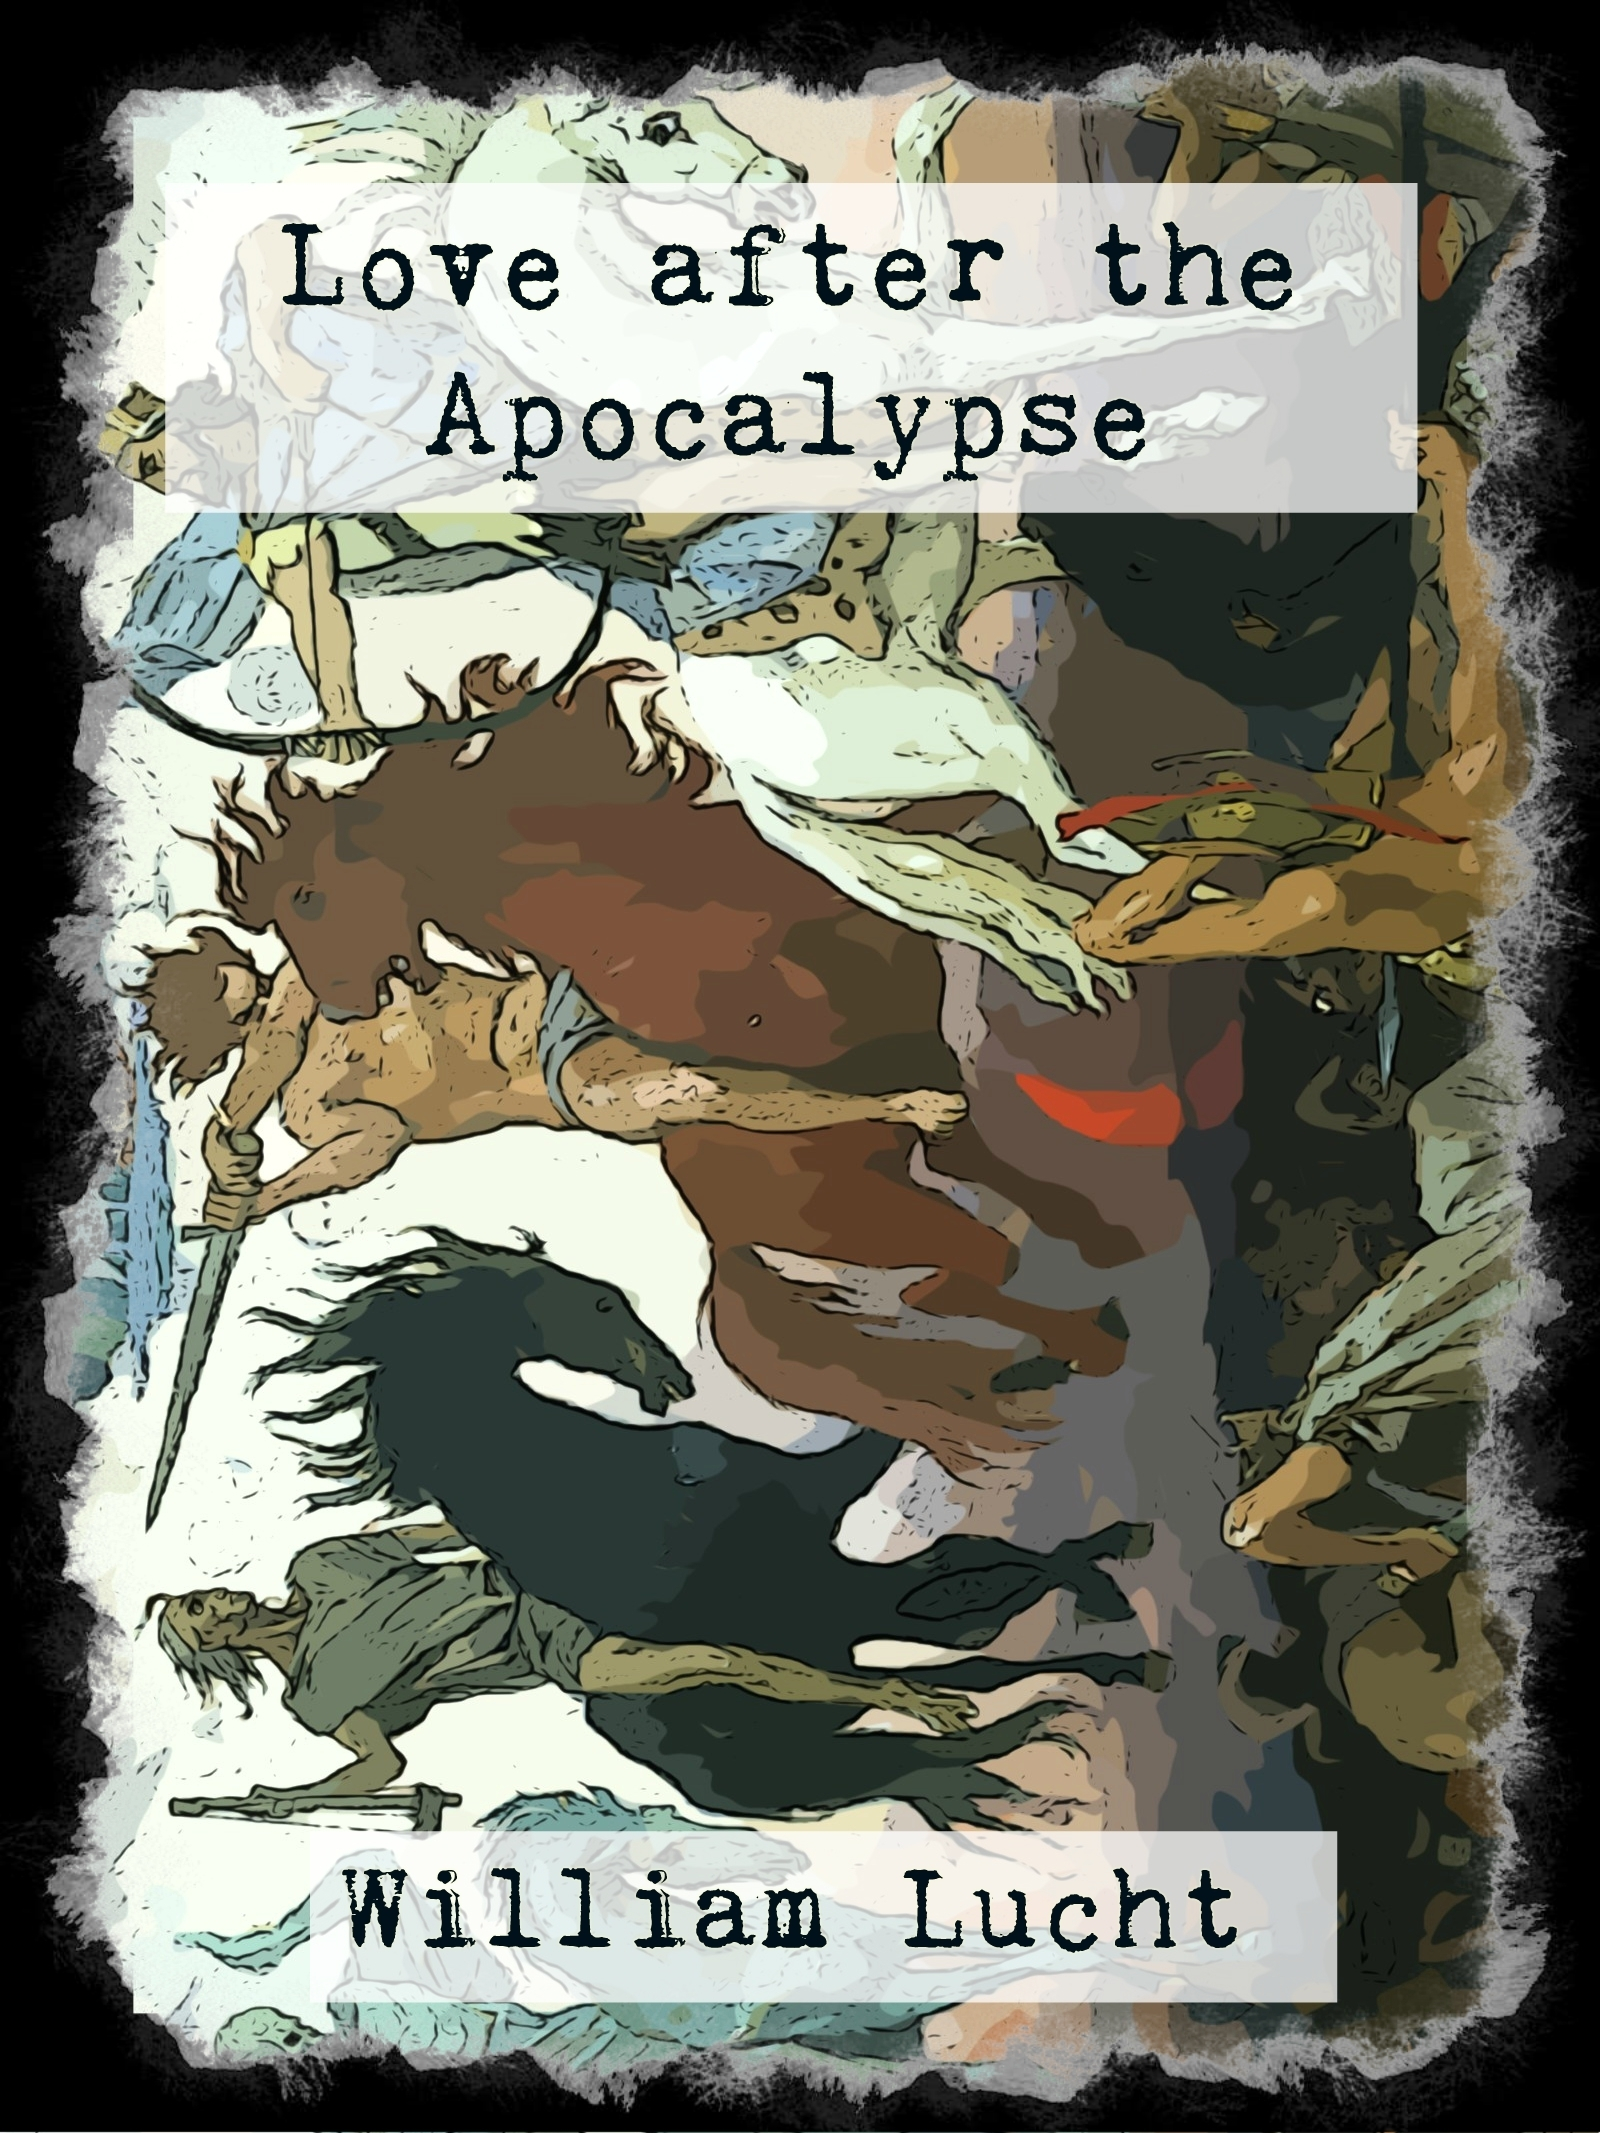 Love after the Apocalypse William Lucht